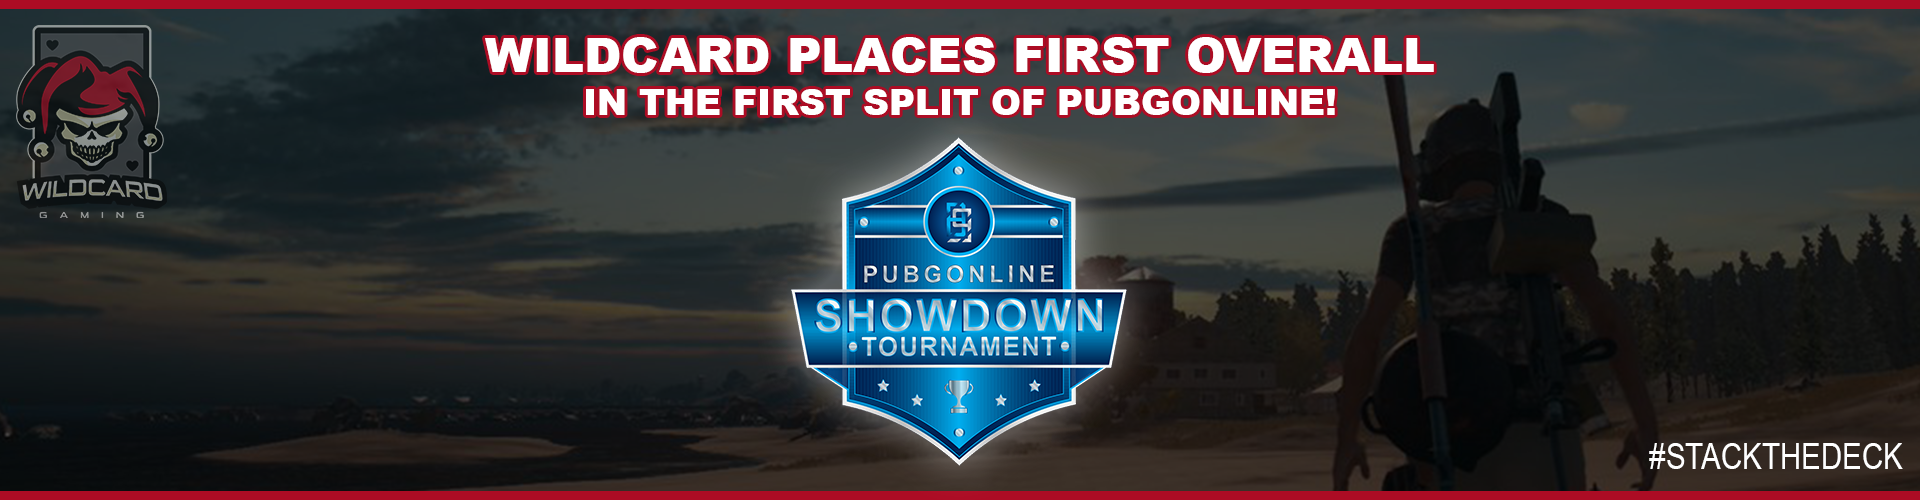 Wildcard Places First Overall In The First Split of PUBGOnline!